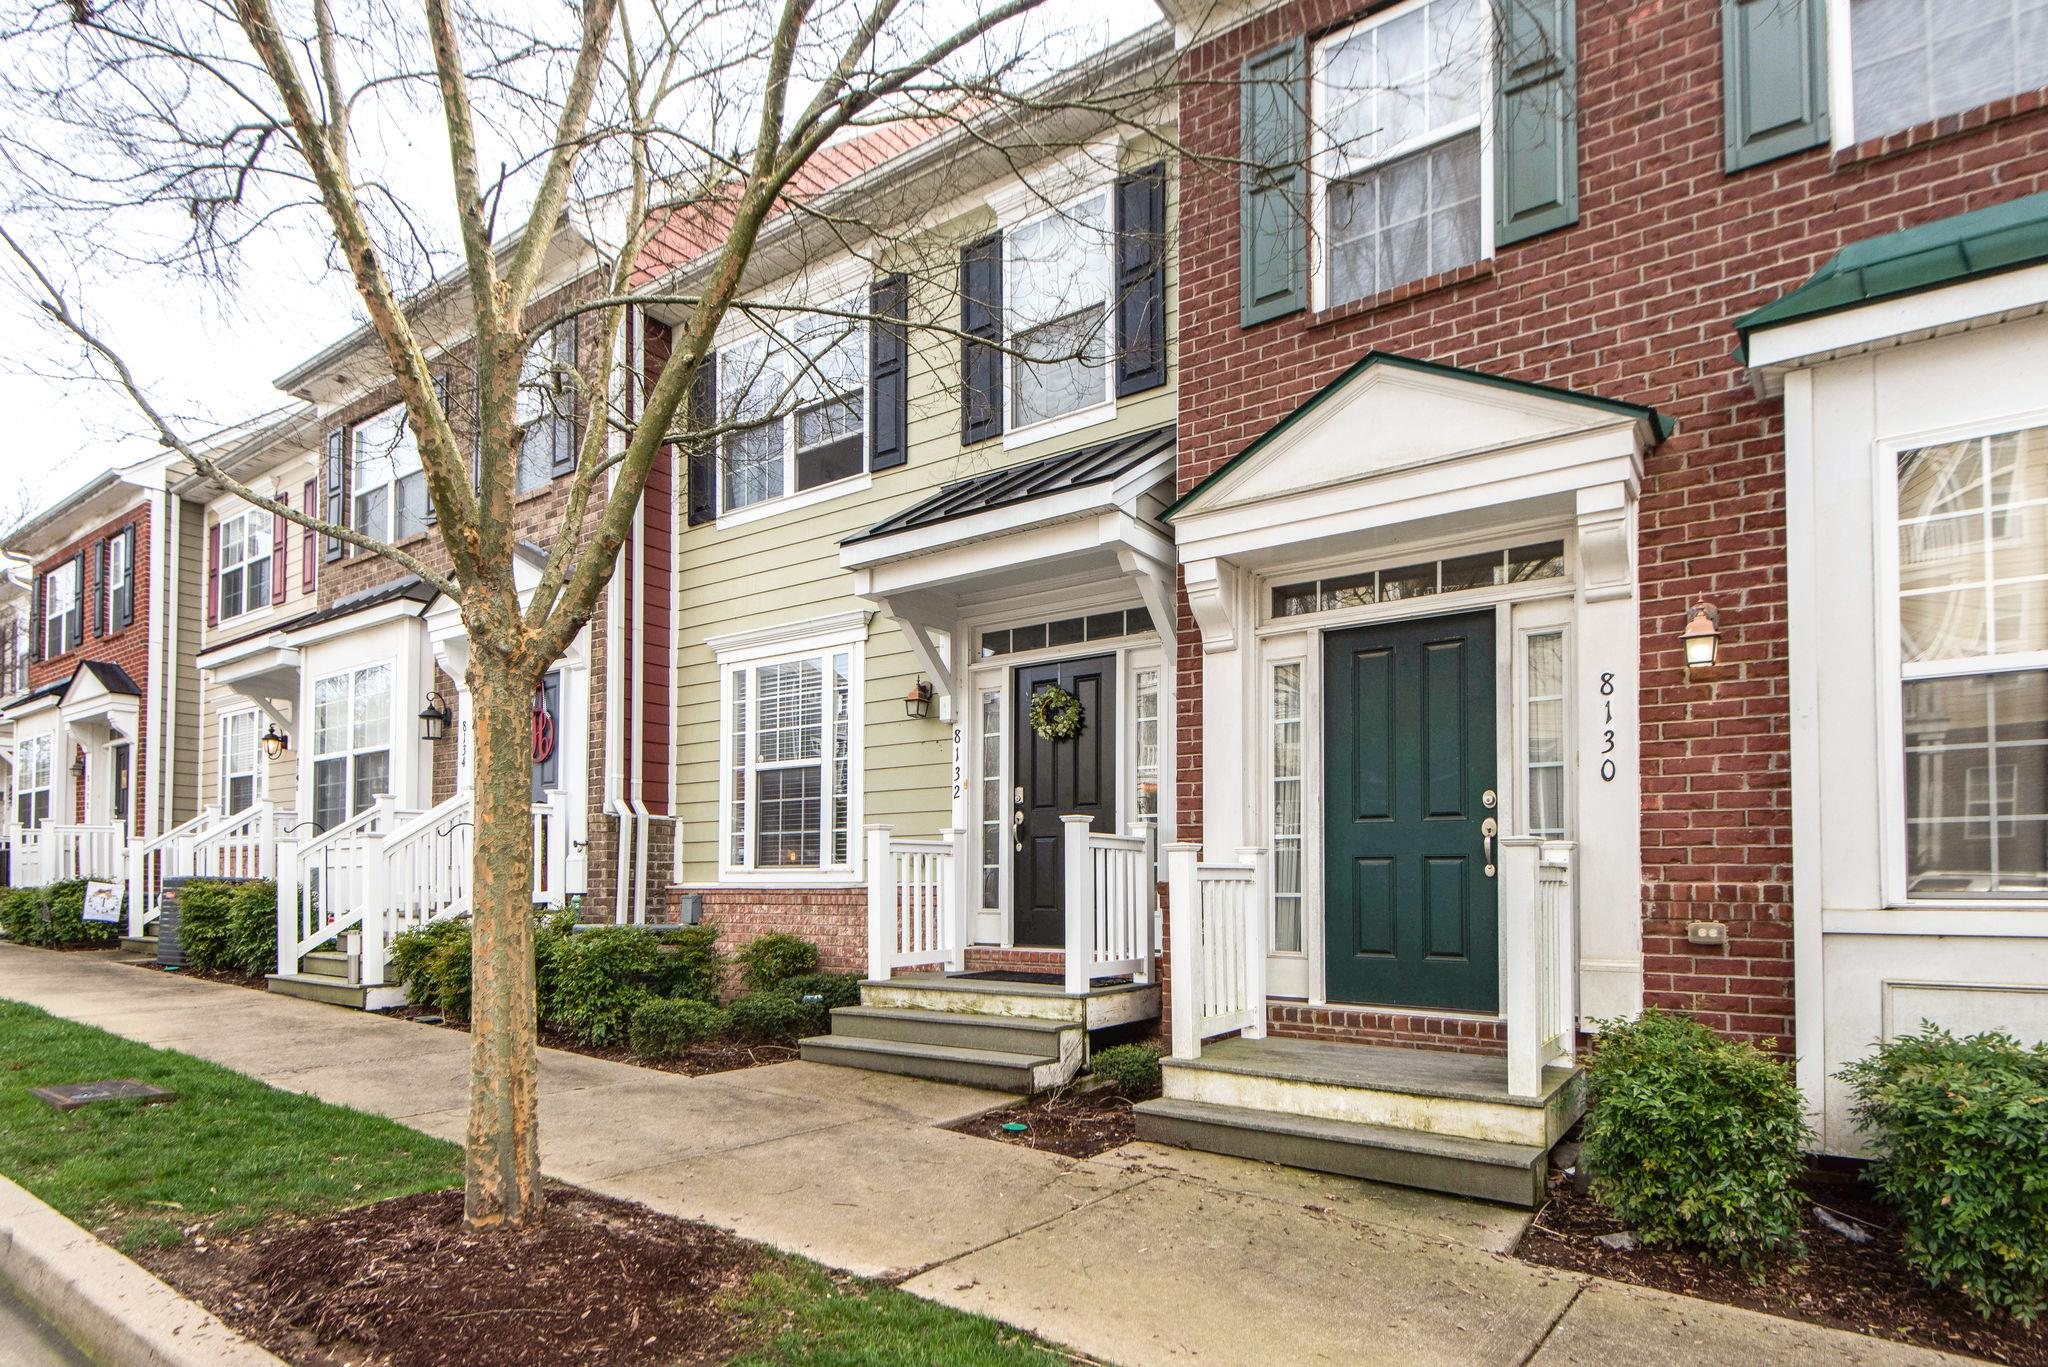 8132 Lenox Creekside Dr, Nashville-Antioch in Davidson County County, TN 37013 Home for Sale